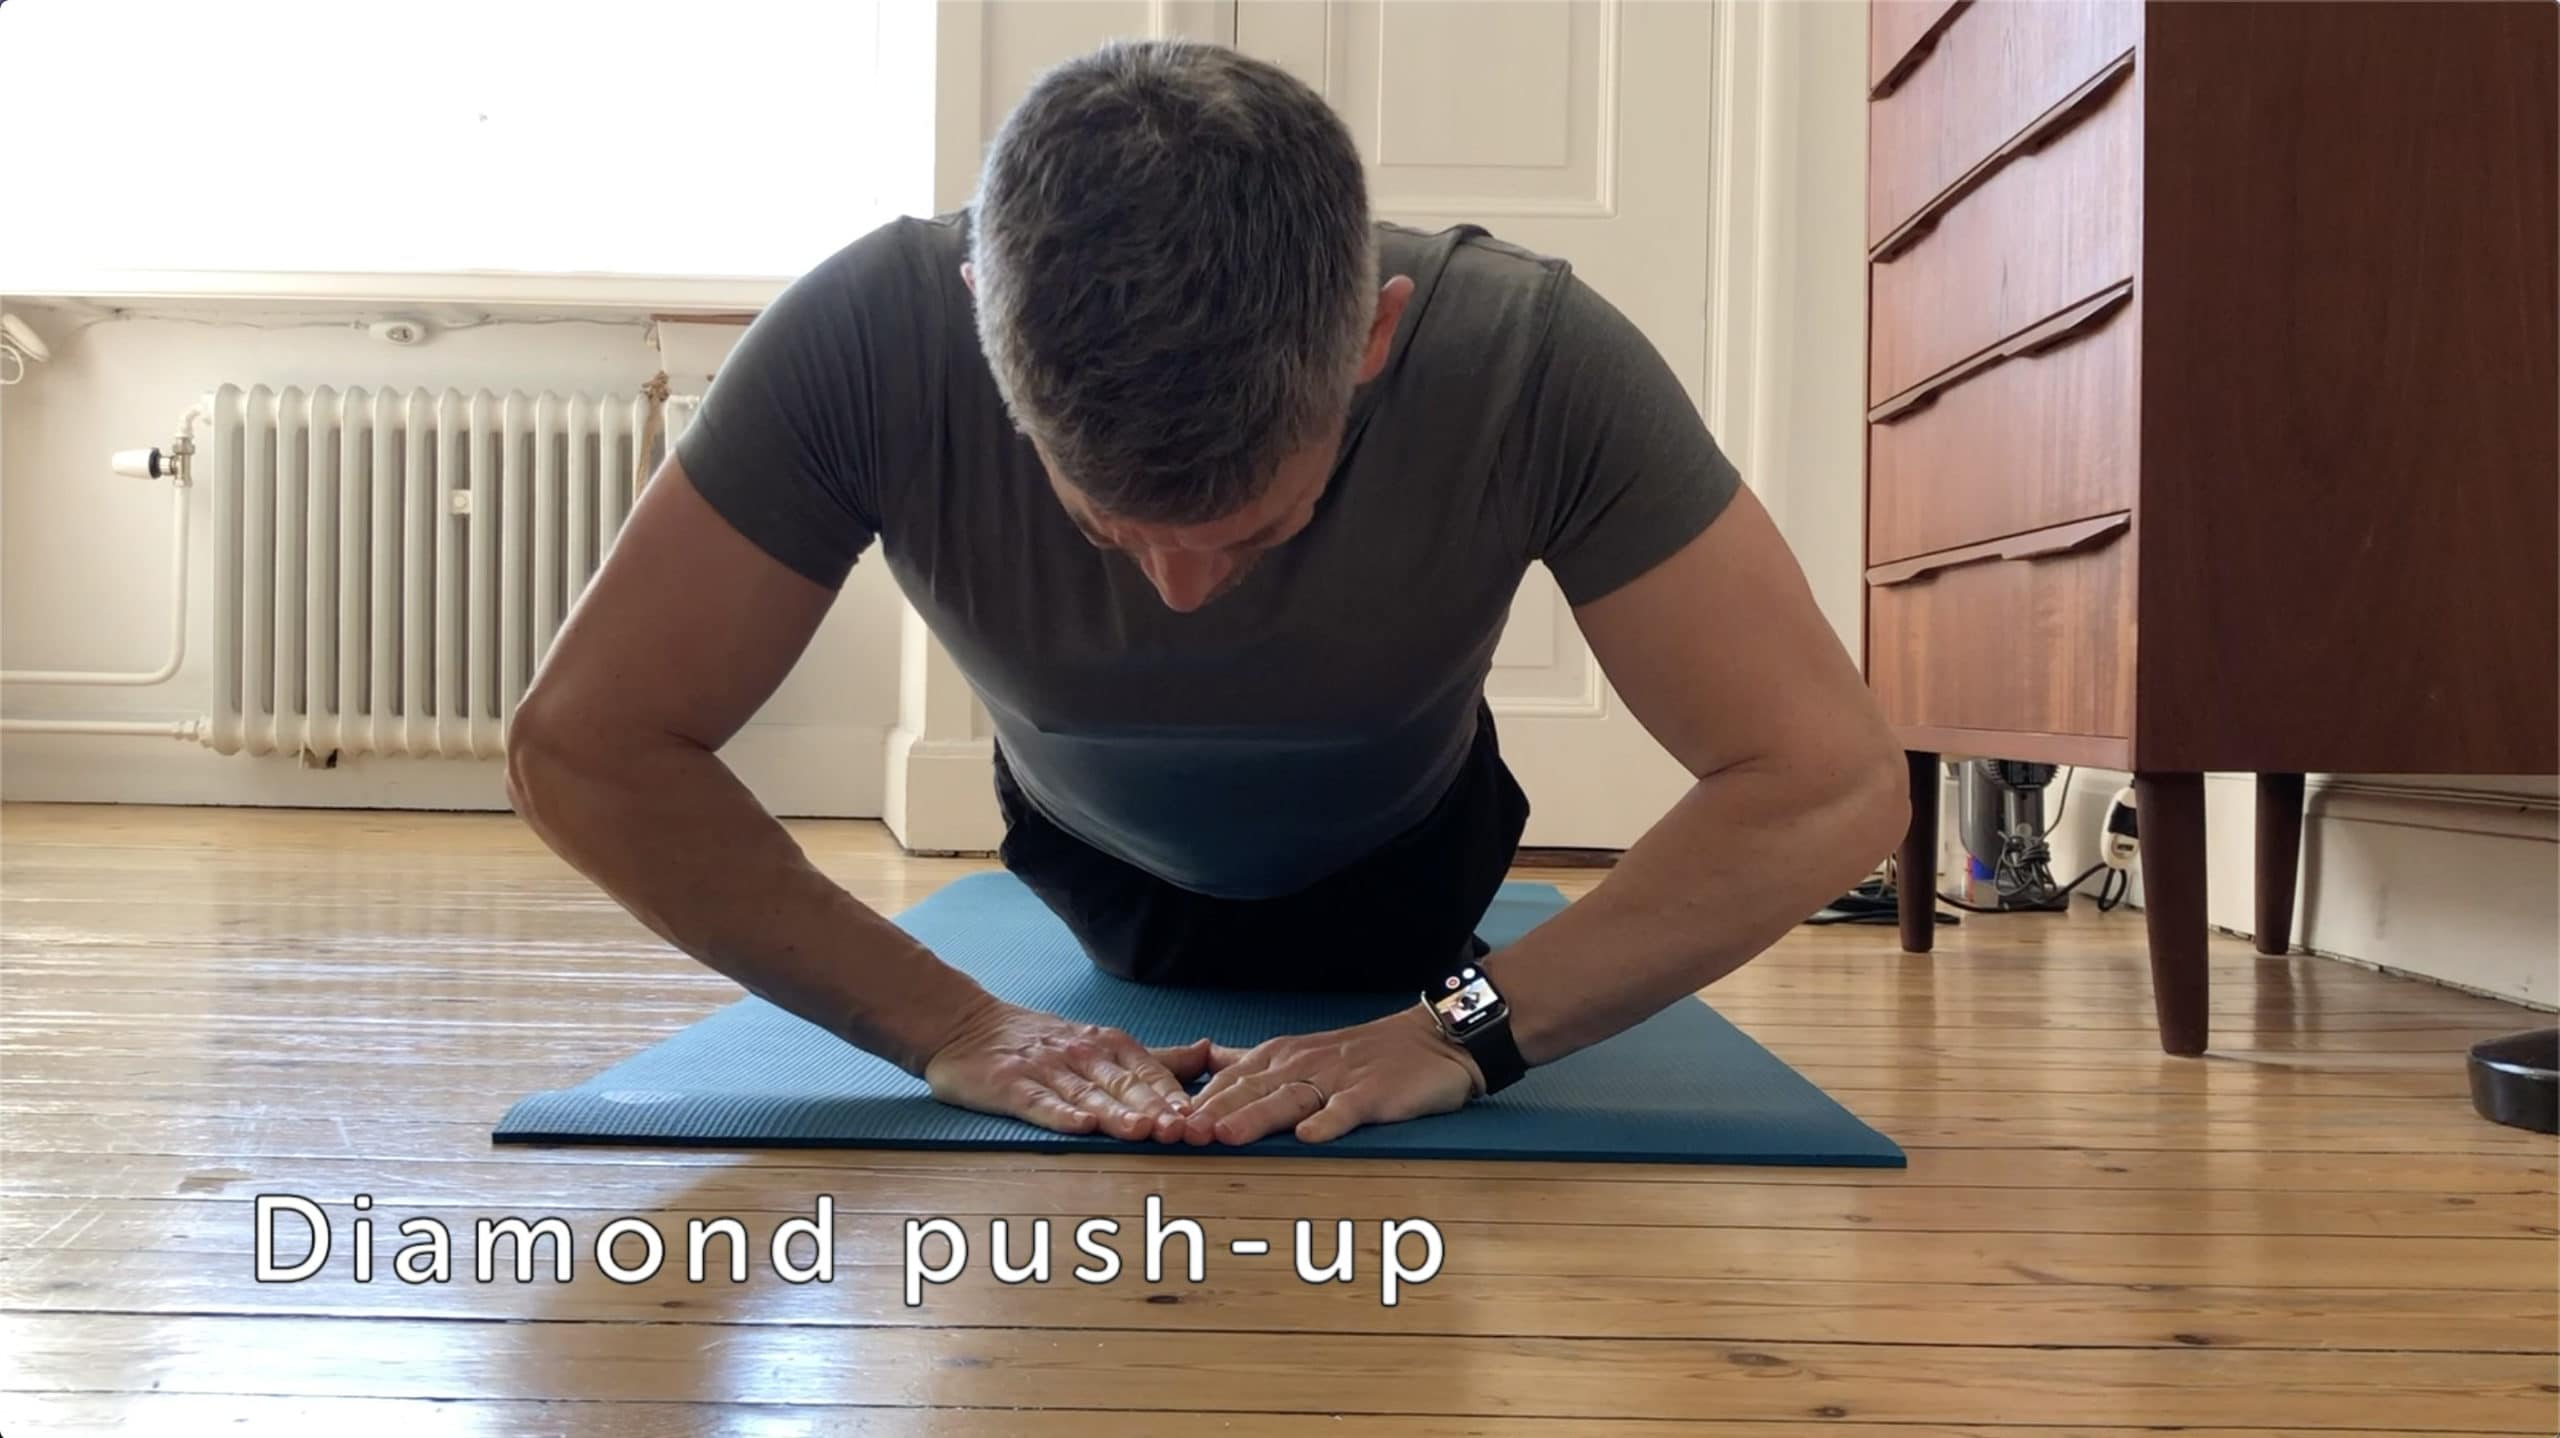 Bring your hands together for a more challenging pushup.